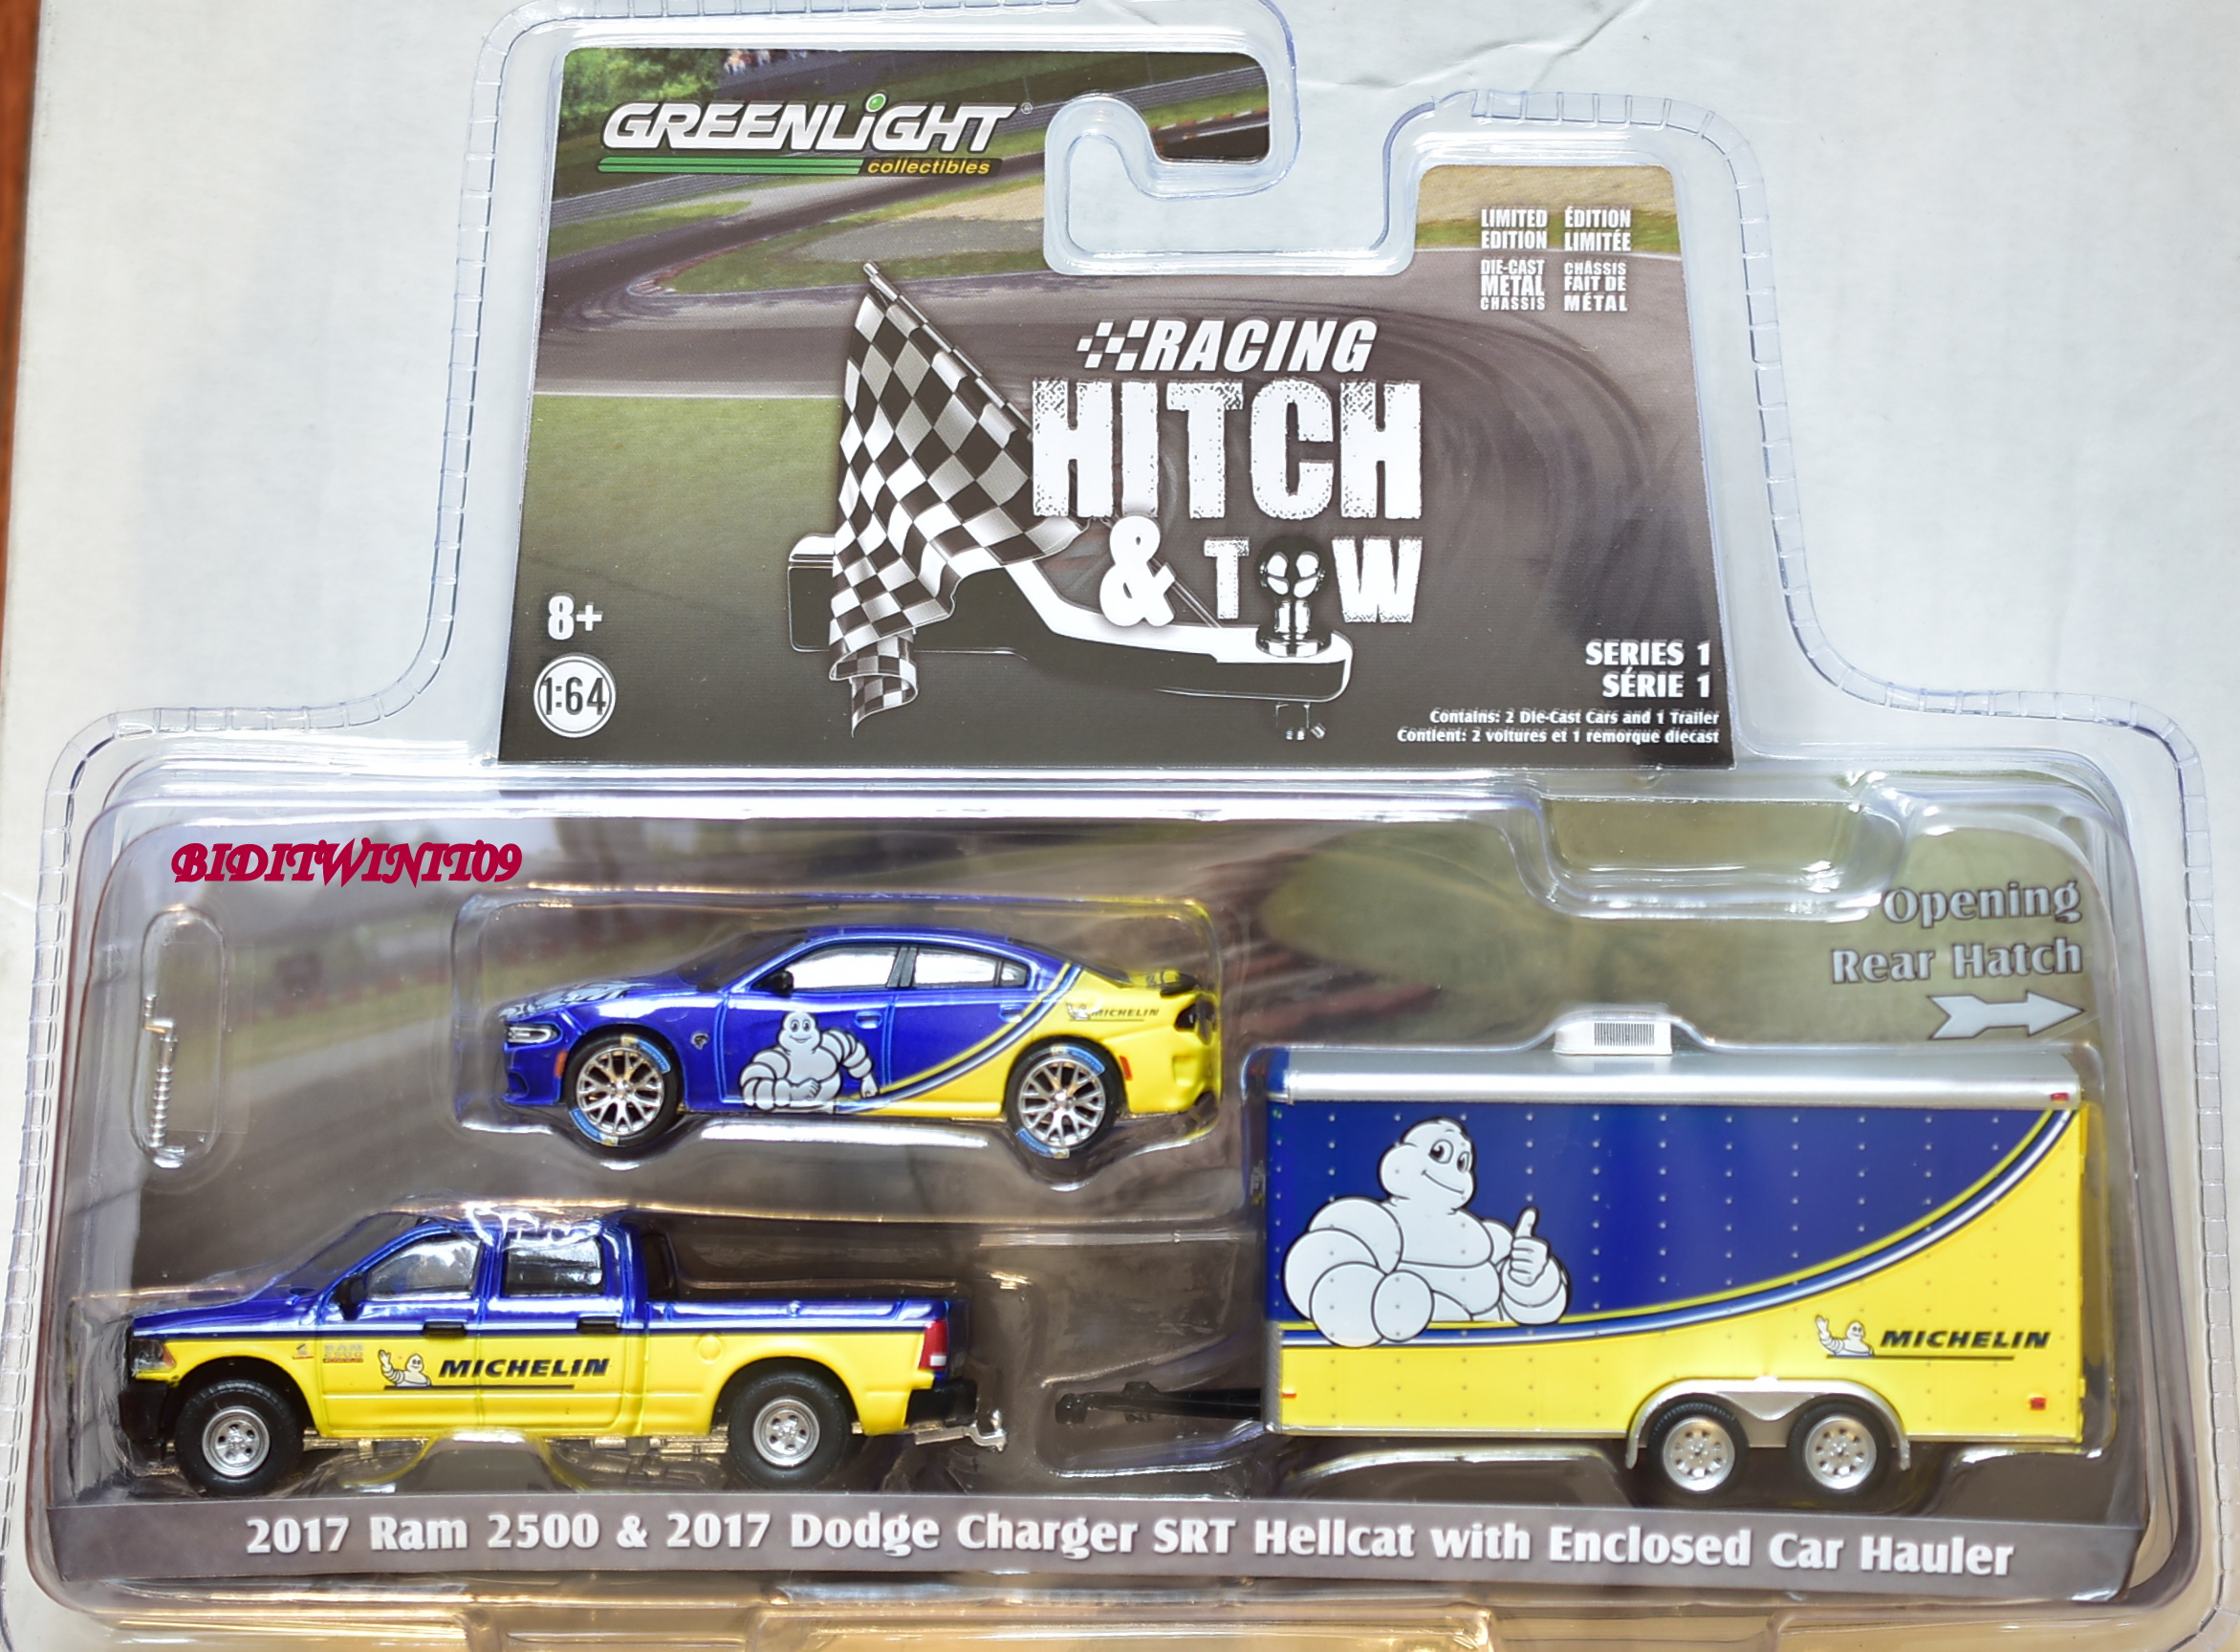 GREENLIGHT 2017 RAM 2500 & 2017 DODGE CHARGER SRT HELLCAT WITH CAR HAULER